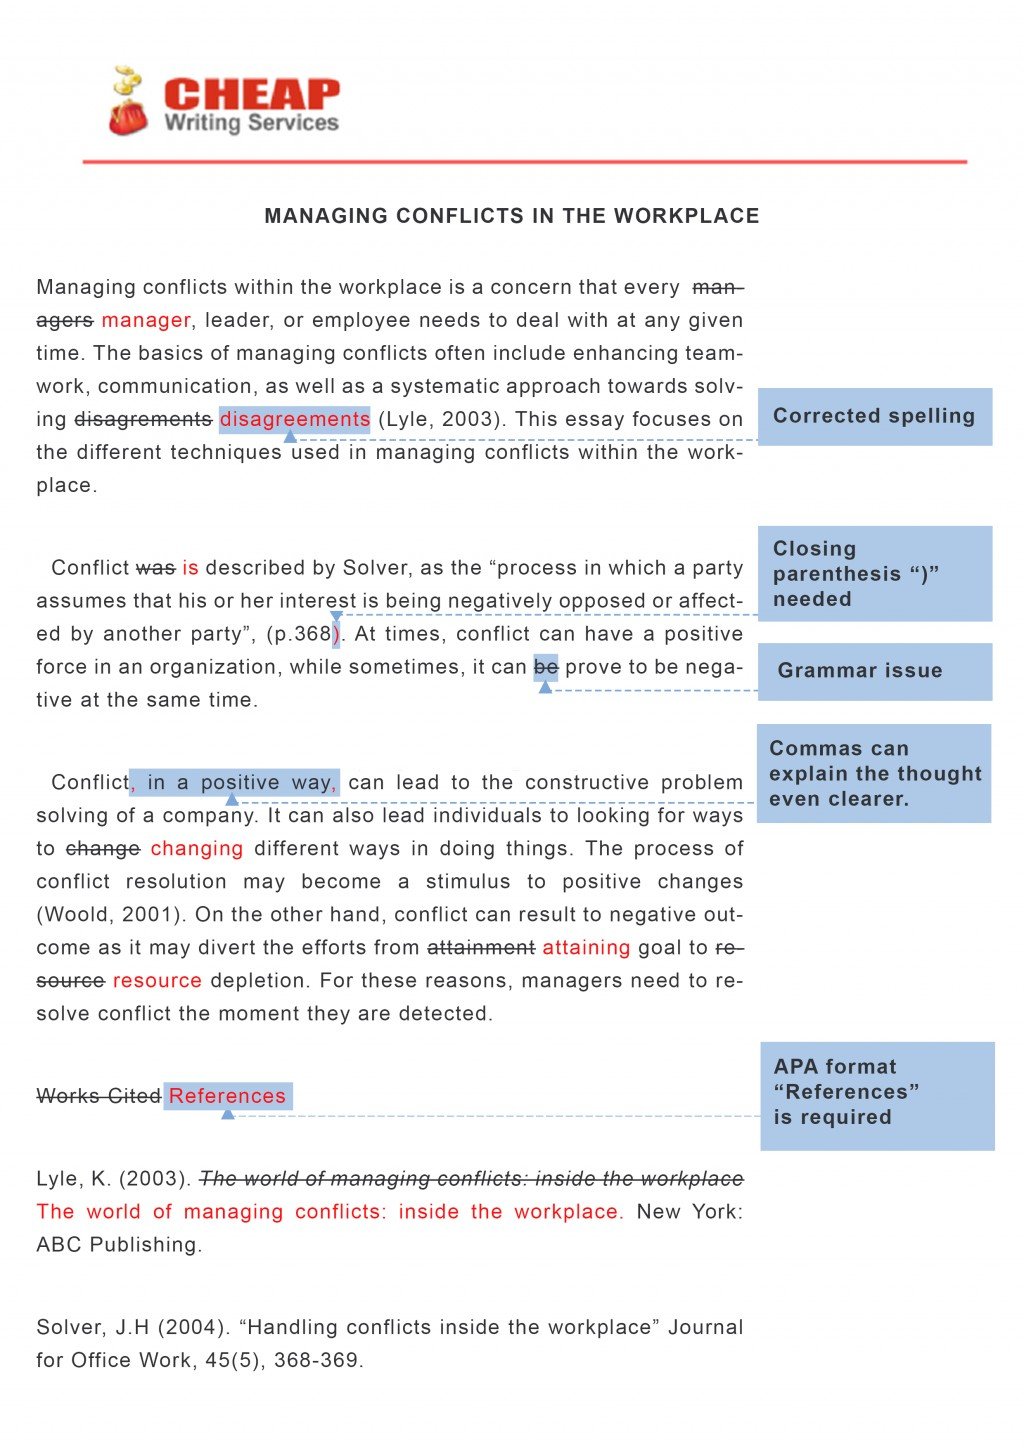 006 Essay Editing Example College Unusual Service Application Services Free Large